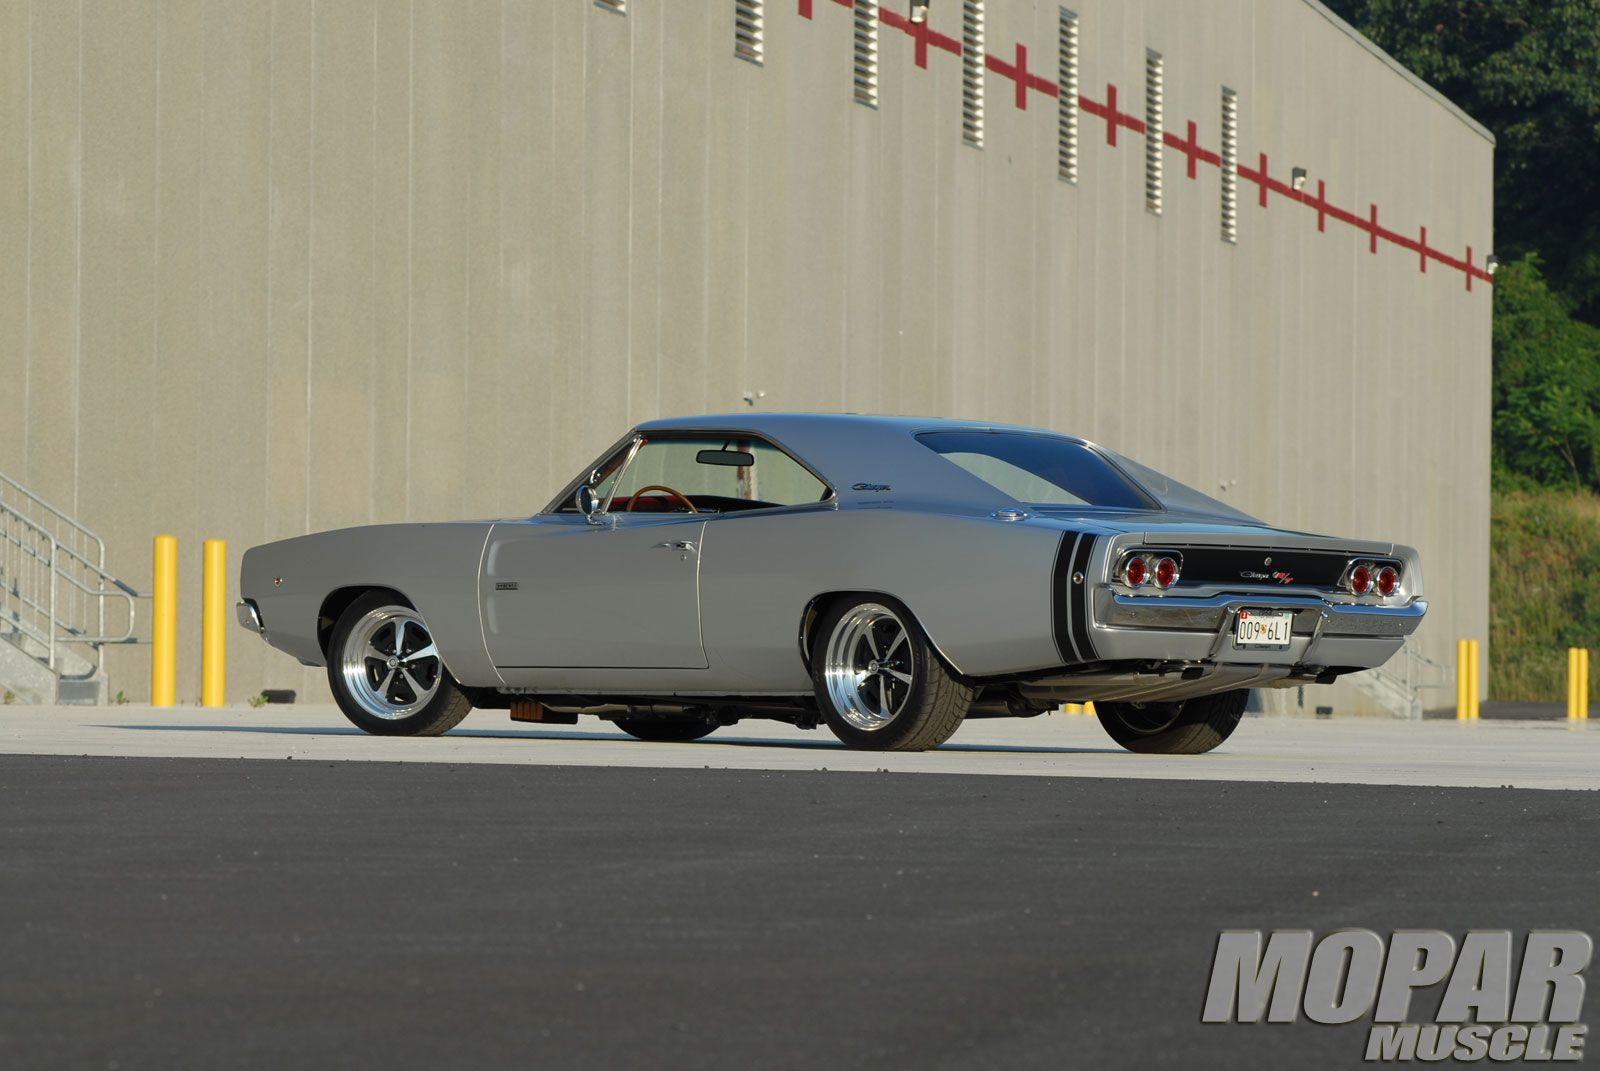 1968 dodge charger onr of its best looking yrs sealingsandexpungements com 888